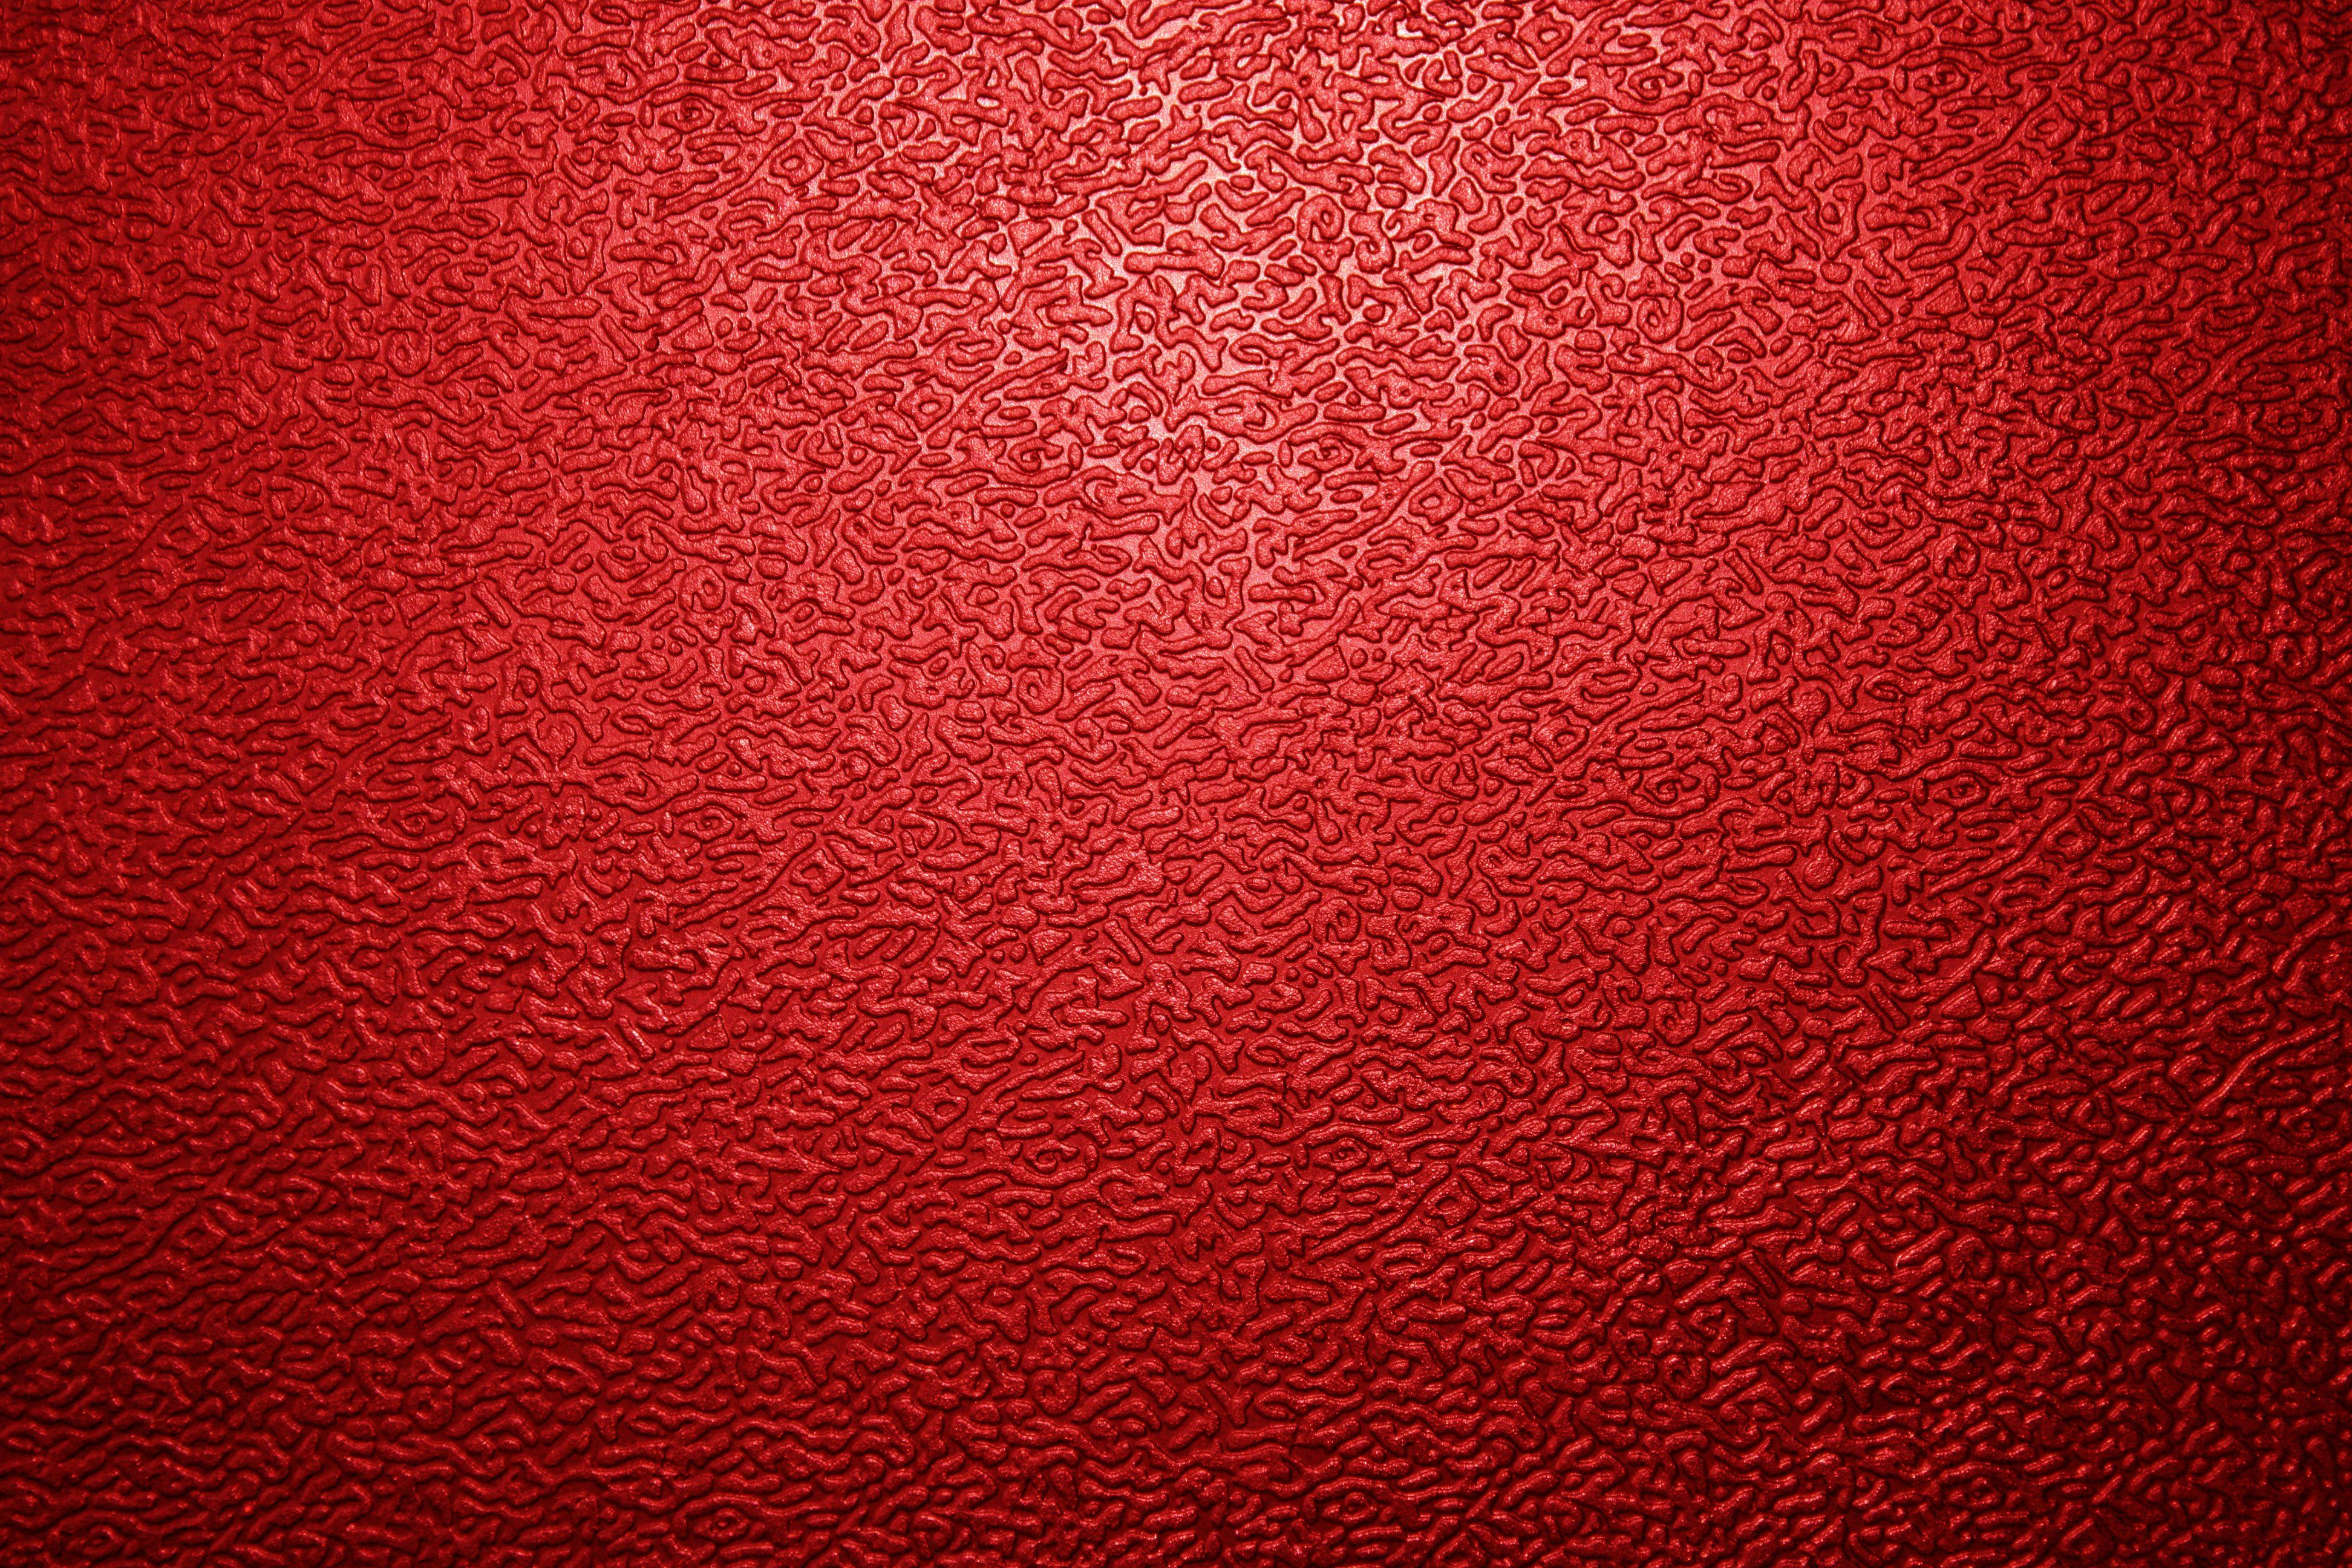 Red Wallpaper Texture 53 226974 High Definition Wallpapers